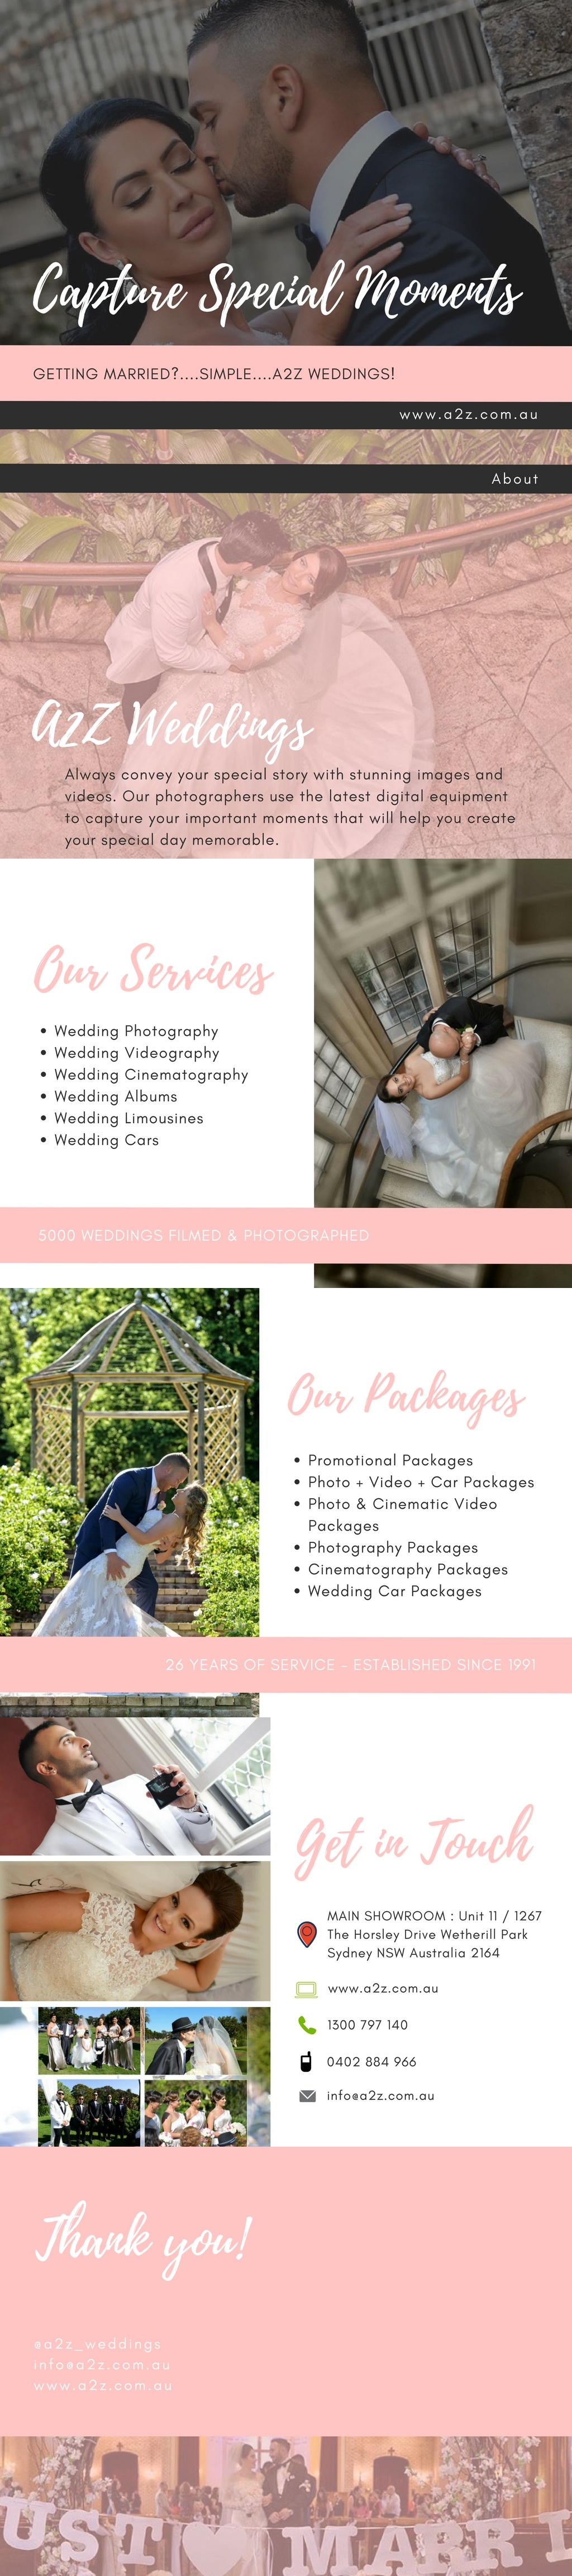 A2Z Weddings Offer A Wide Range Of Wedding Photography And Videography Services In Sydney Explore